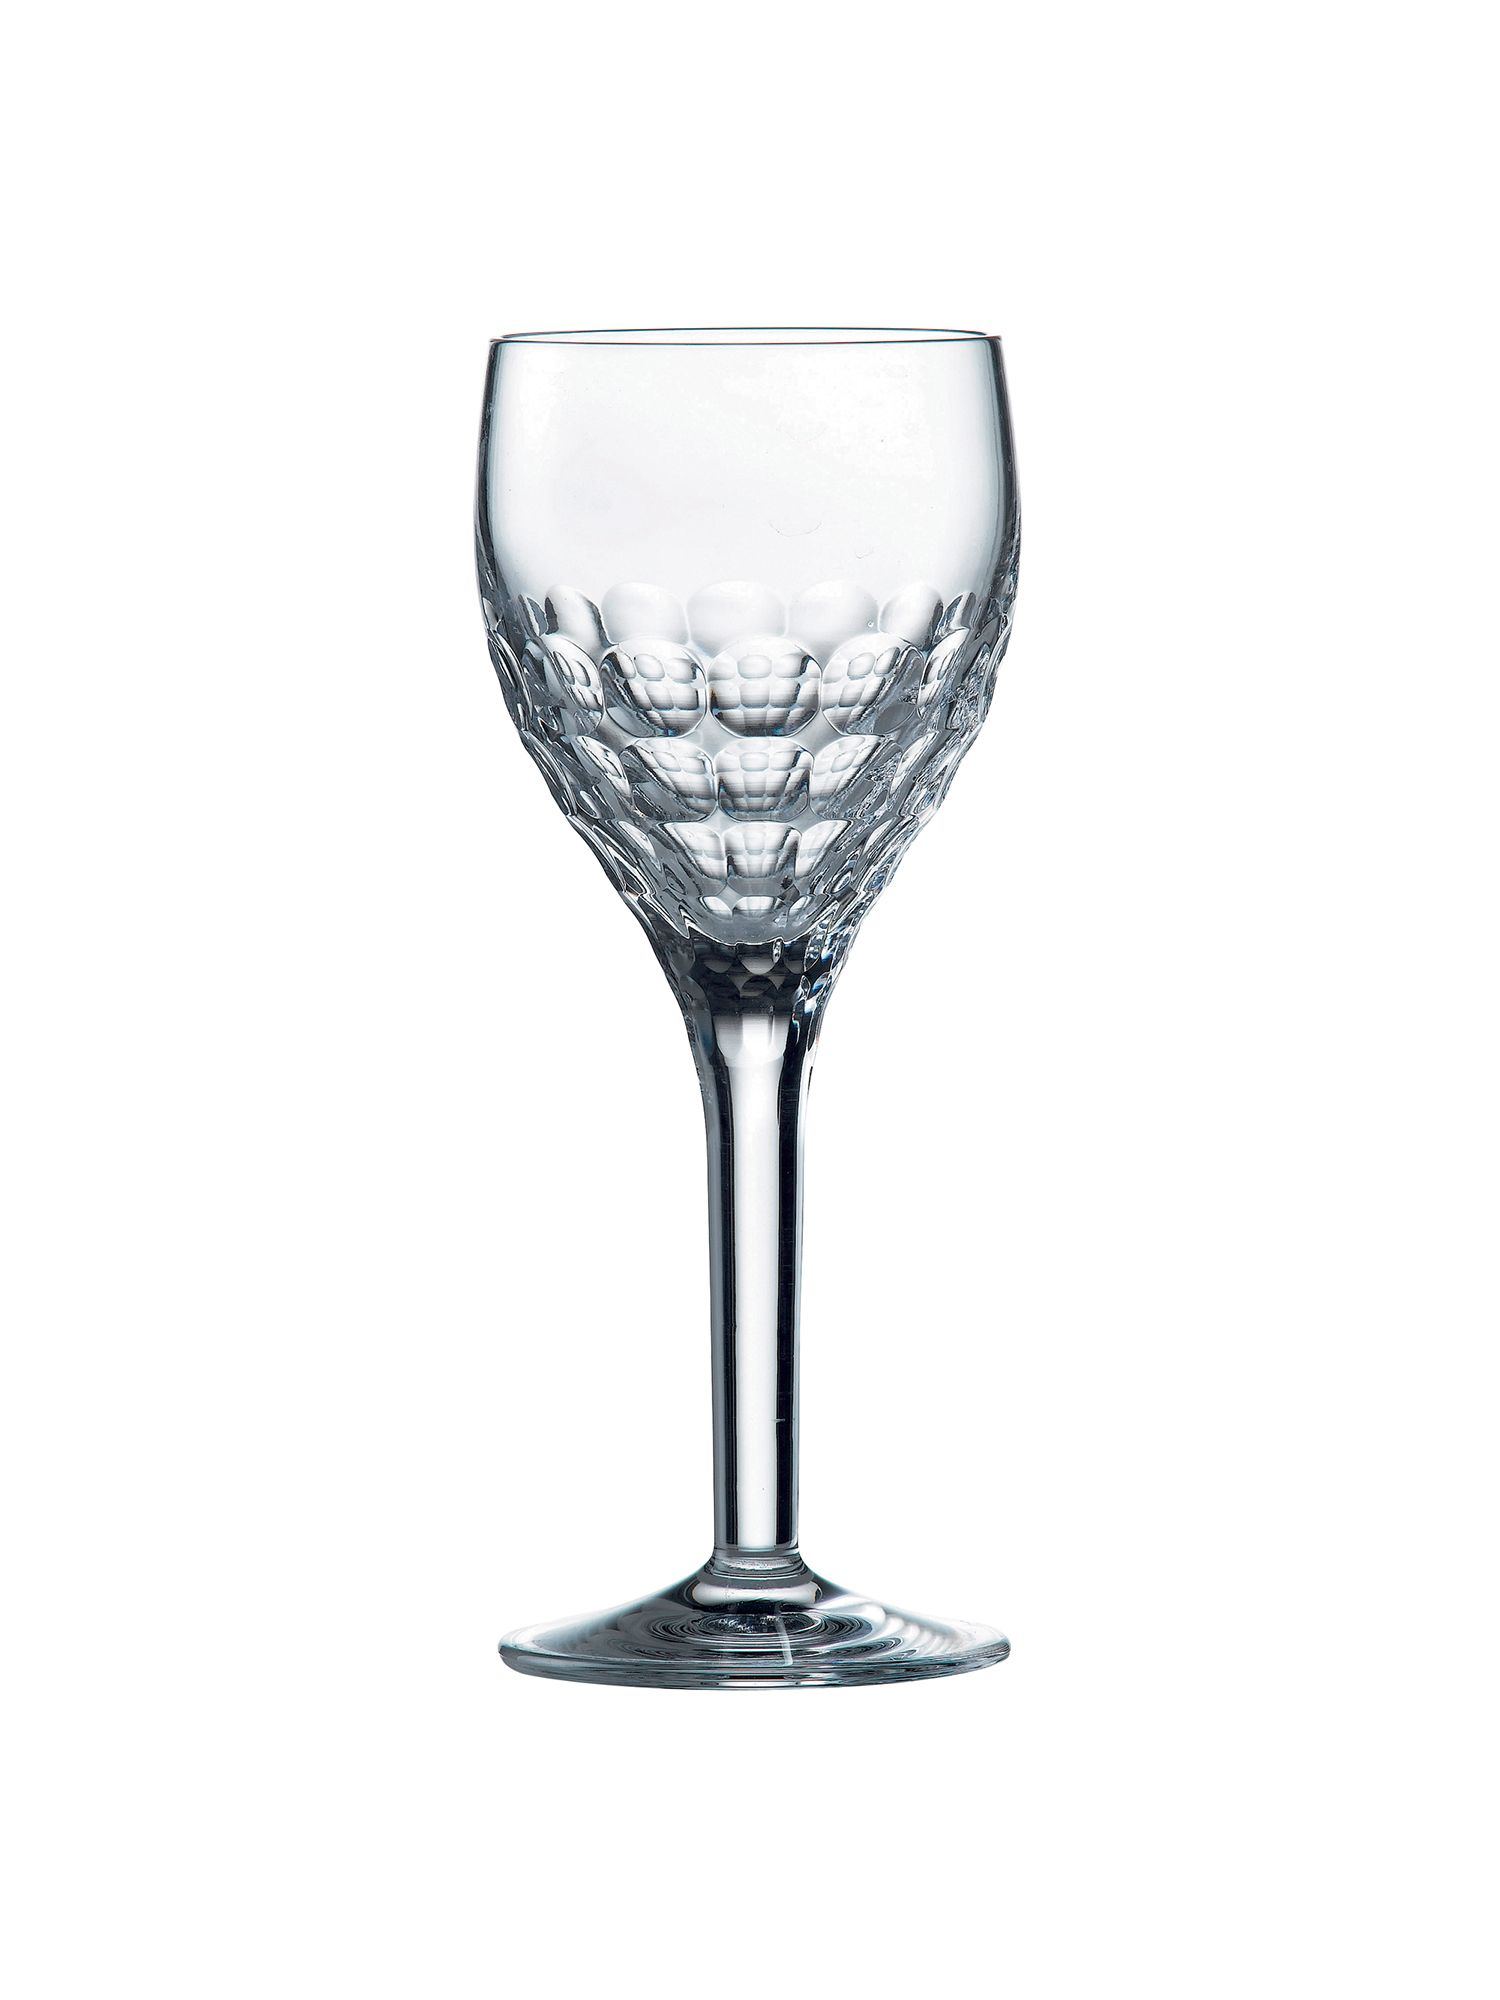 Richmond crystal box of 4 wine glass